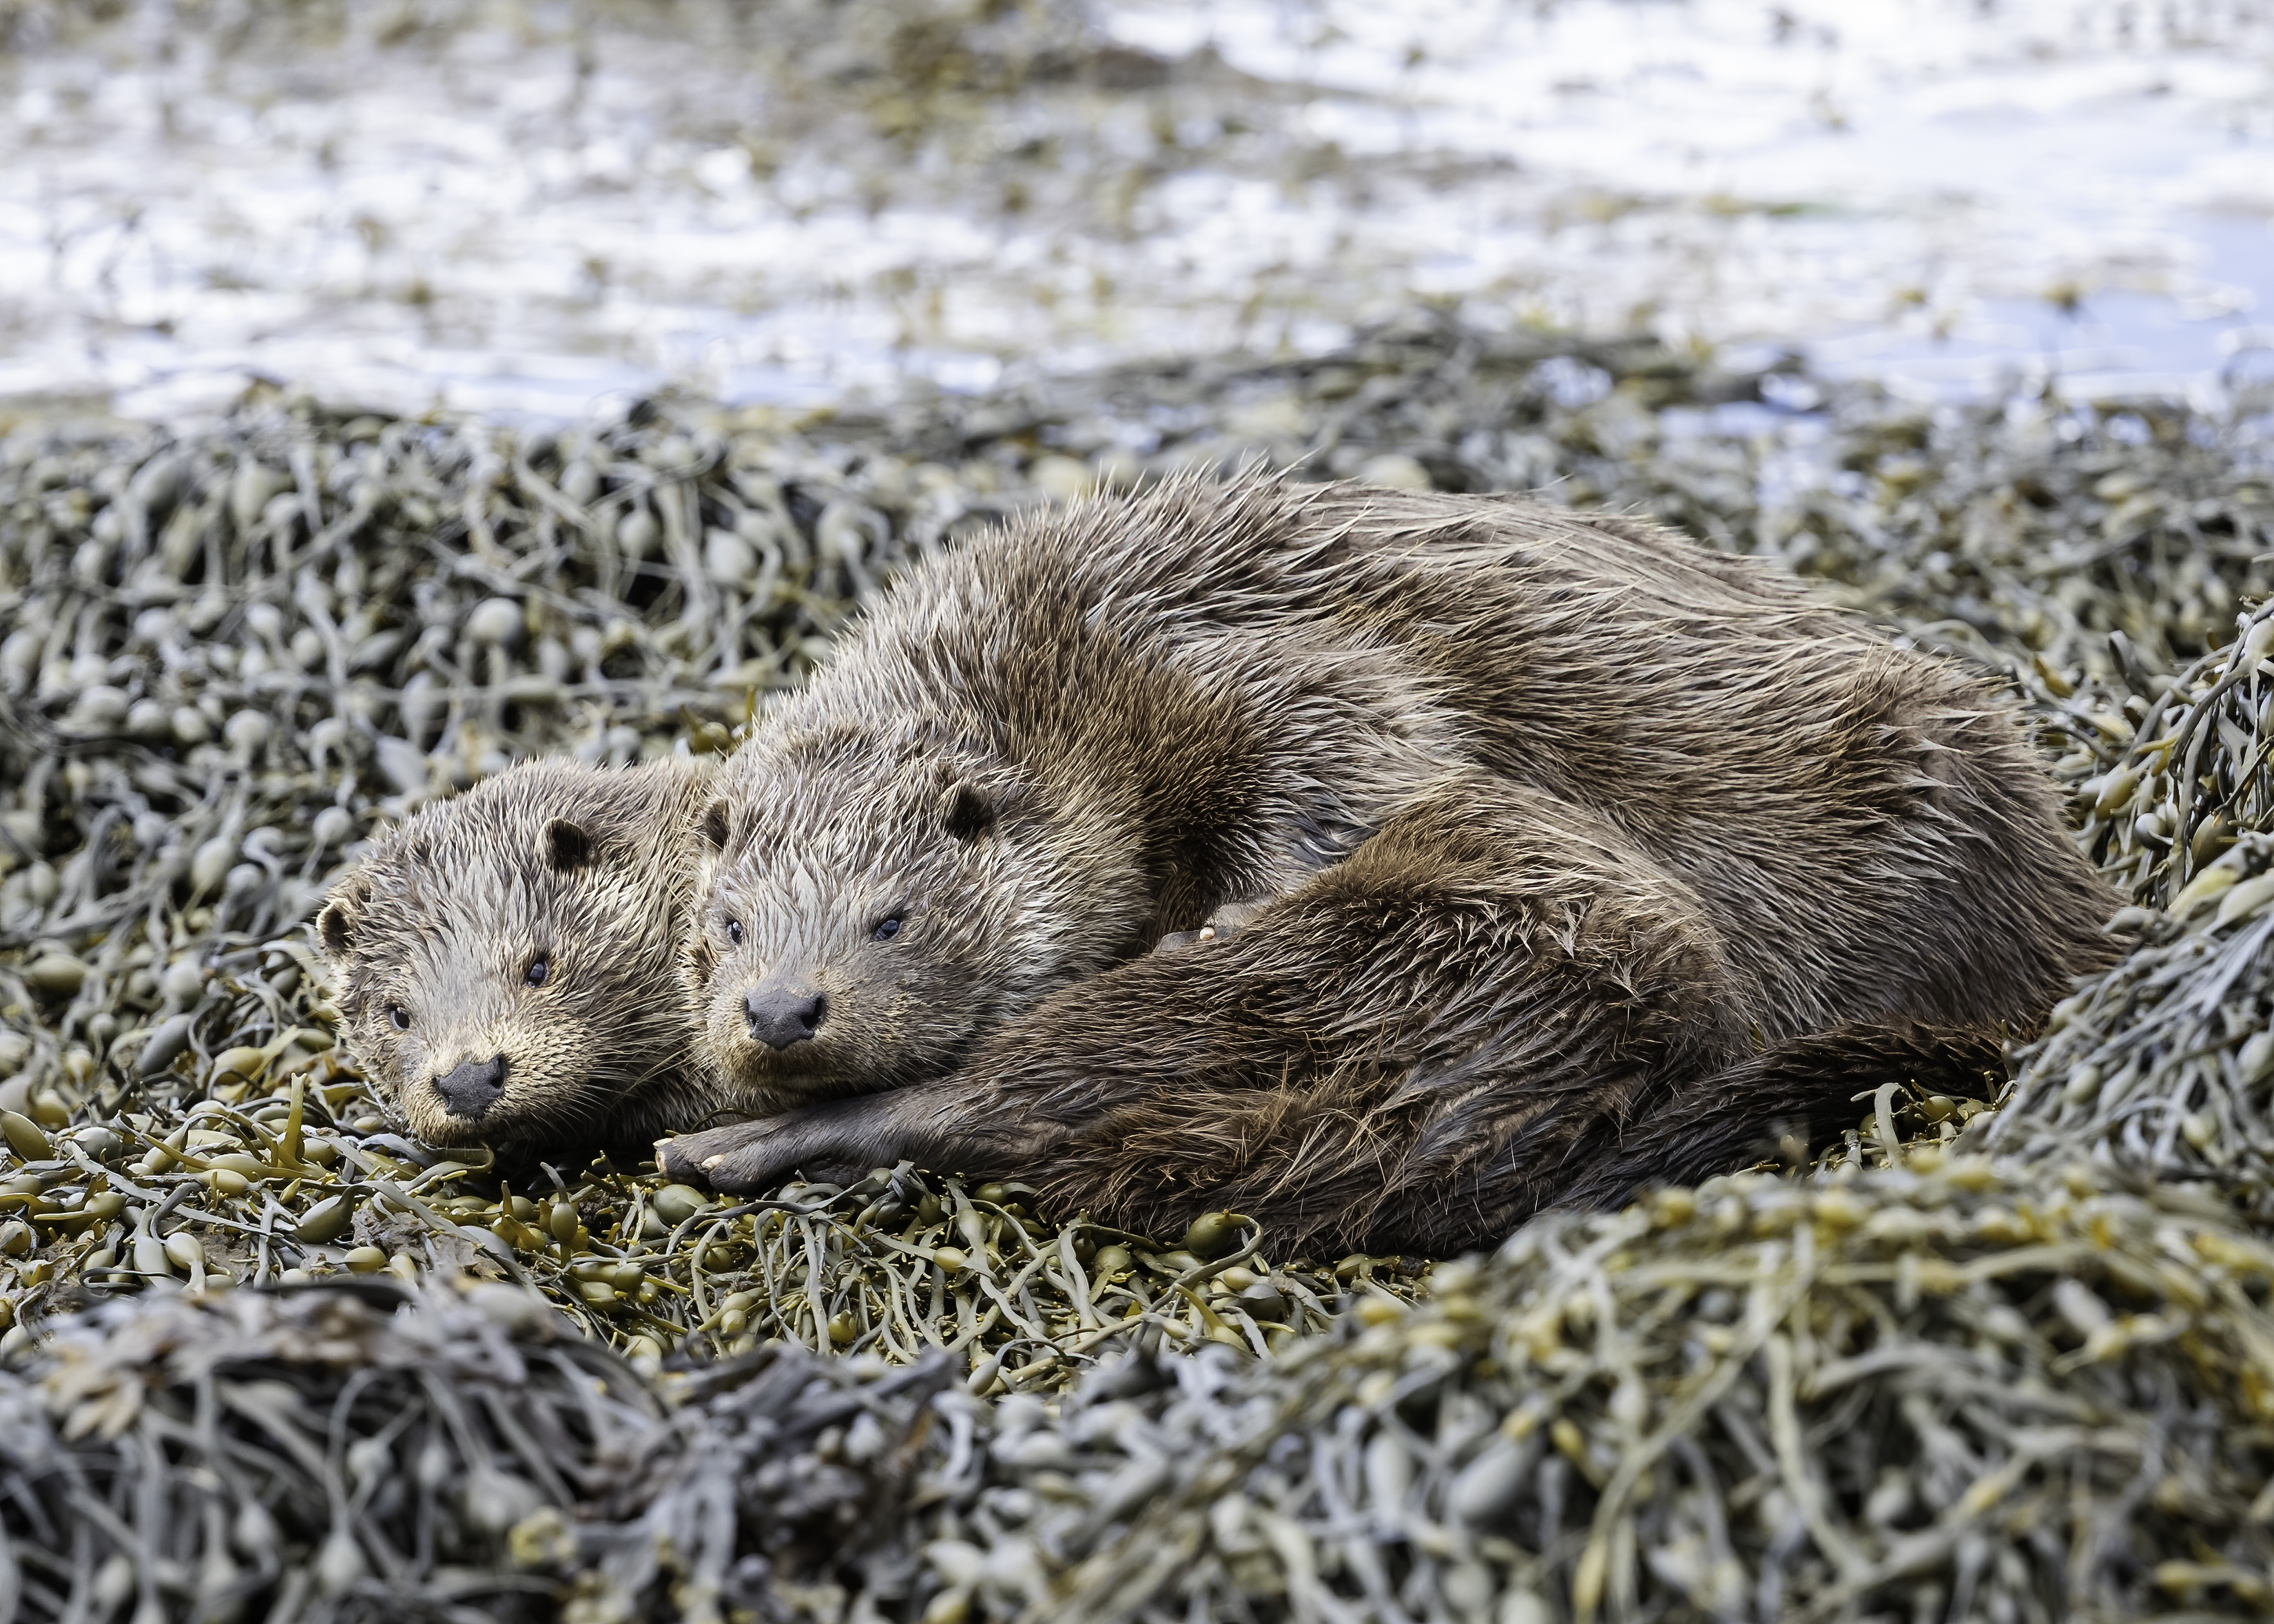 Otter and cub lying together